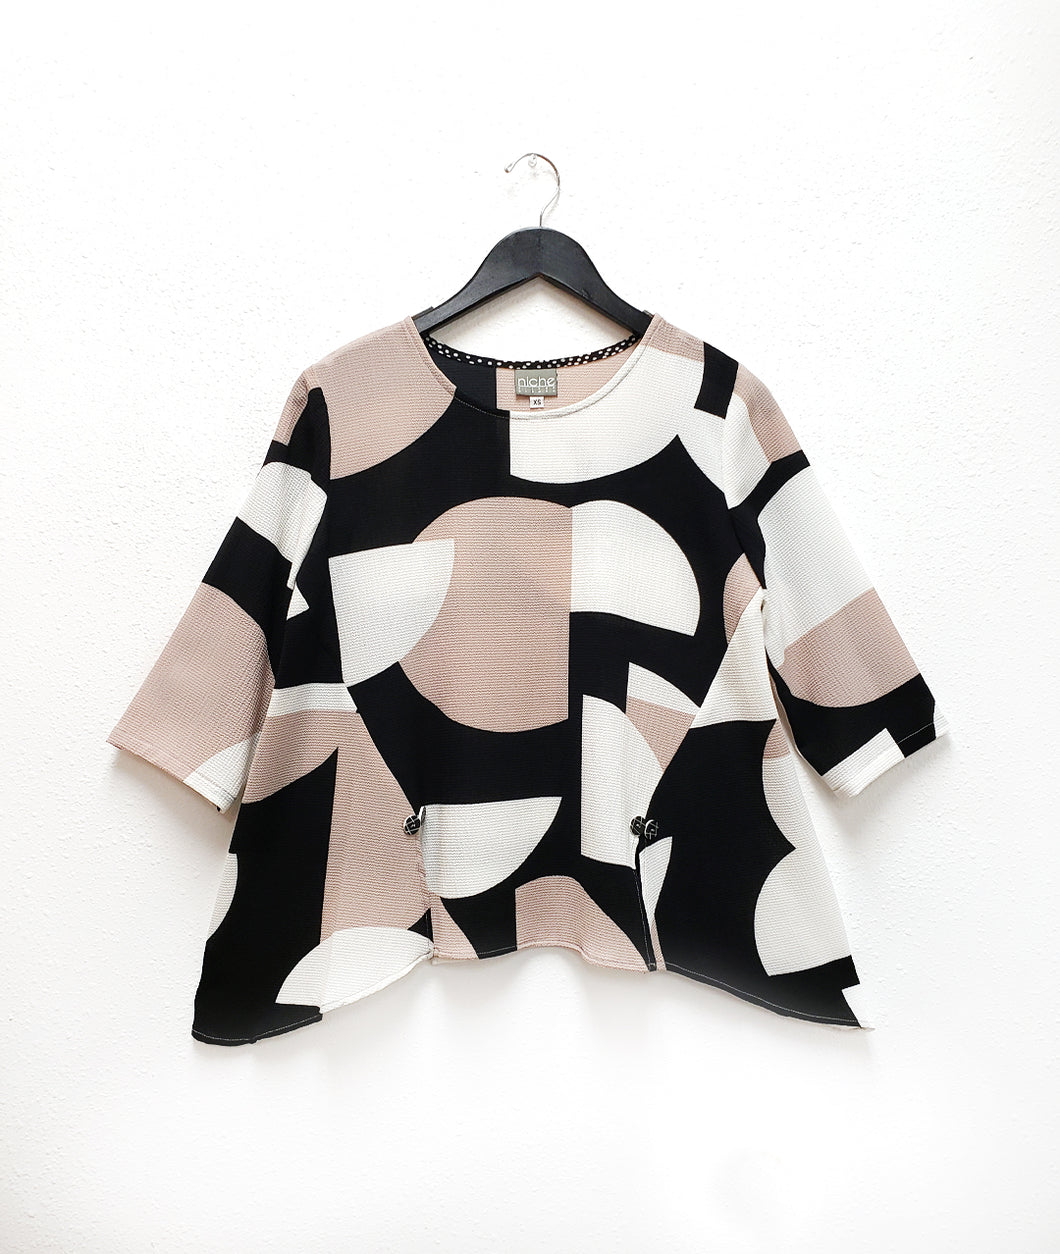 black, white and taupe pull over top with princess seams ending in a split at the bottom hem with a twin button detail.